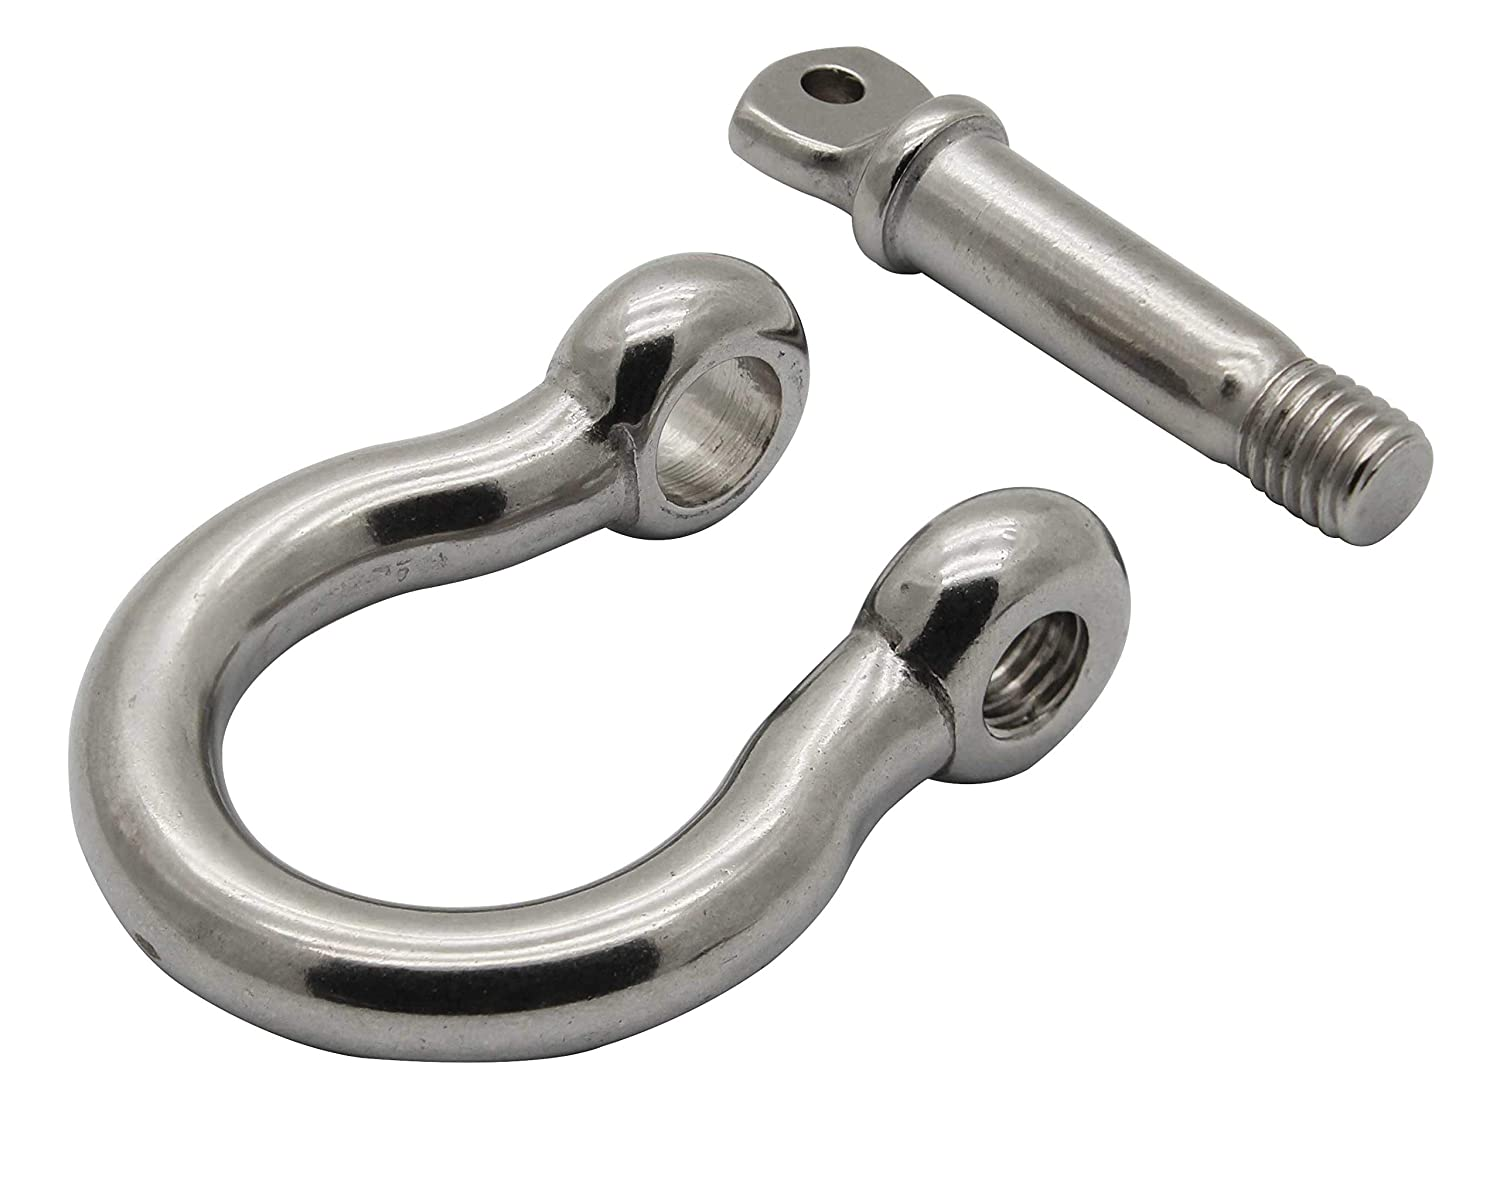 Extreme Max Silver Standard 3006.8306 BoatTector Stainless Steel Bow Shackle-7//8